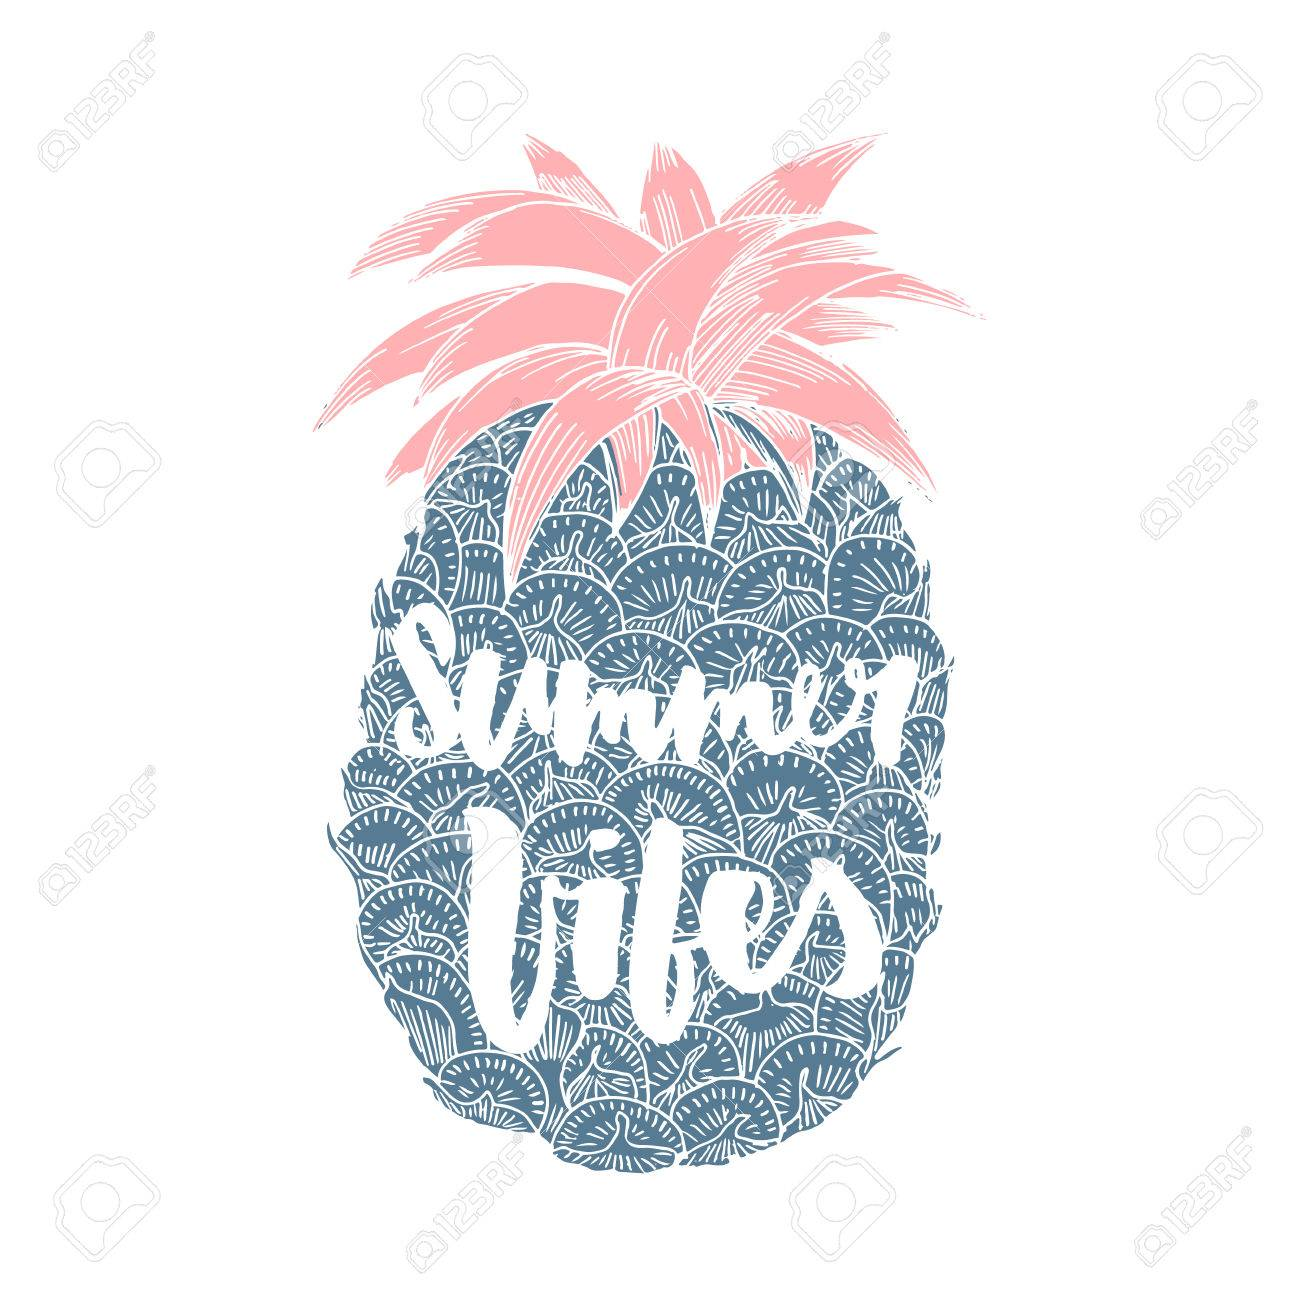 Summer vibes. Hand written lettering quote for poster, card,..